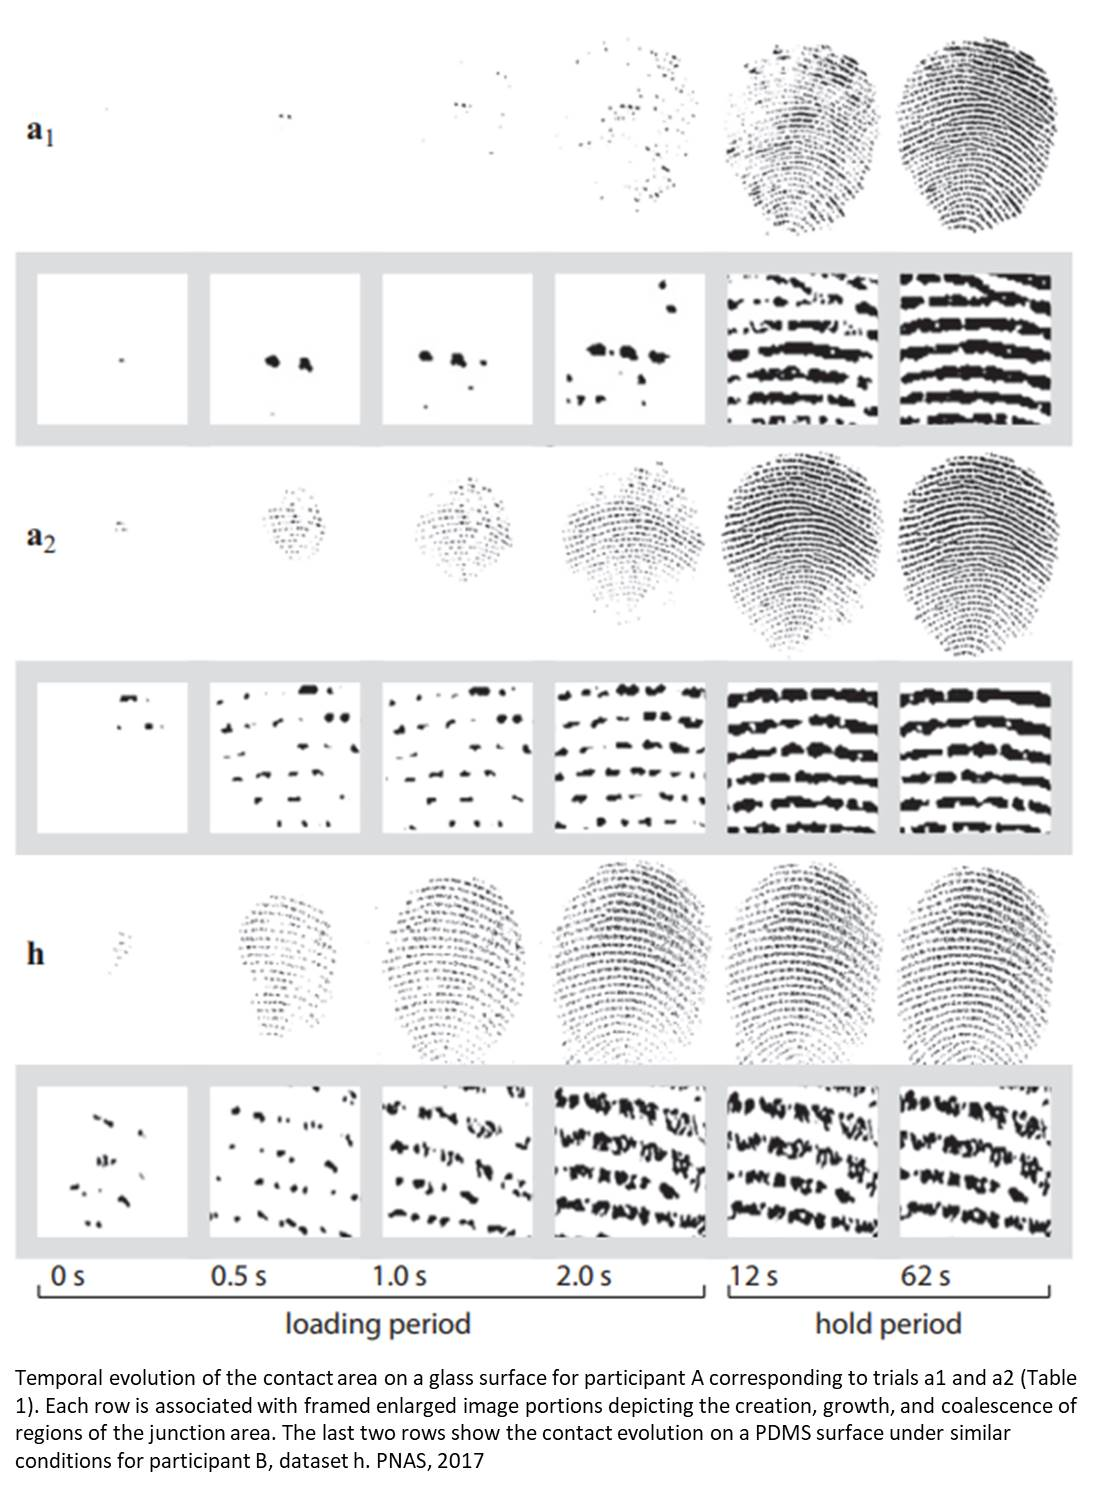 How fingers interact with surfaces